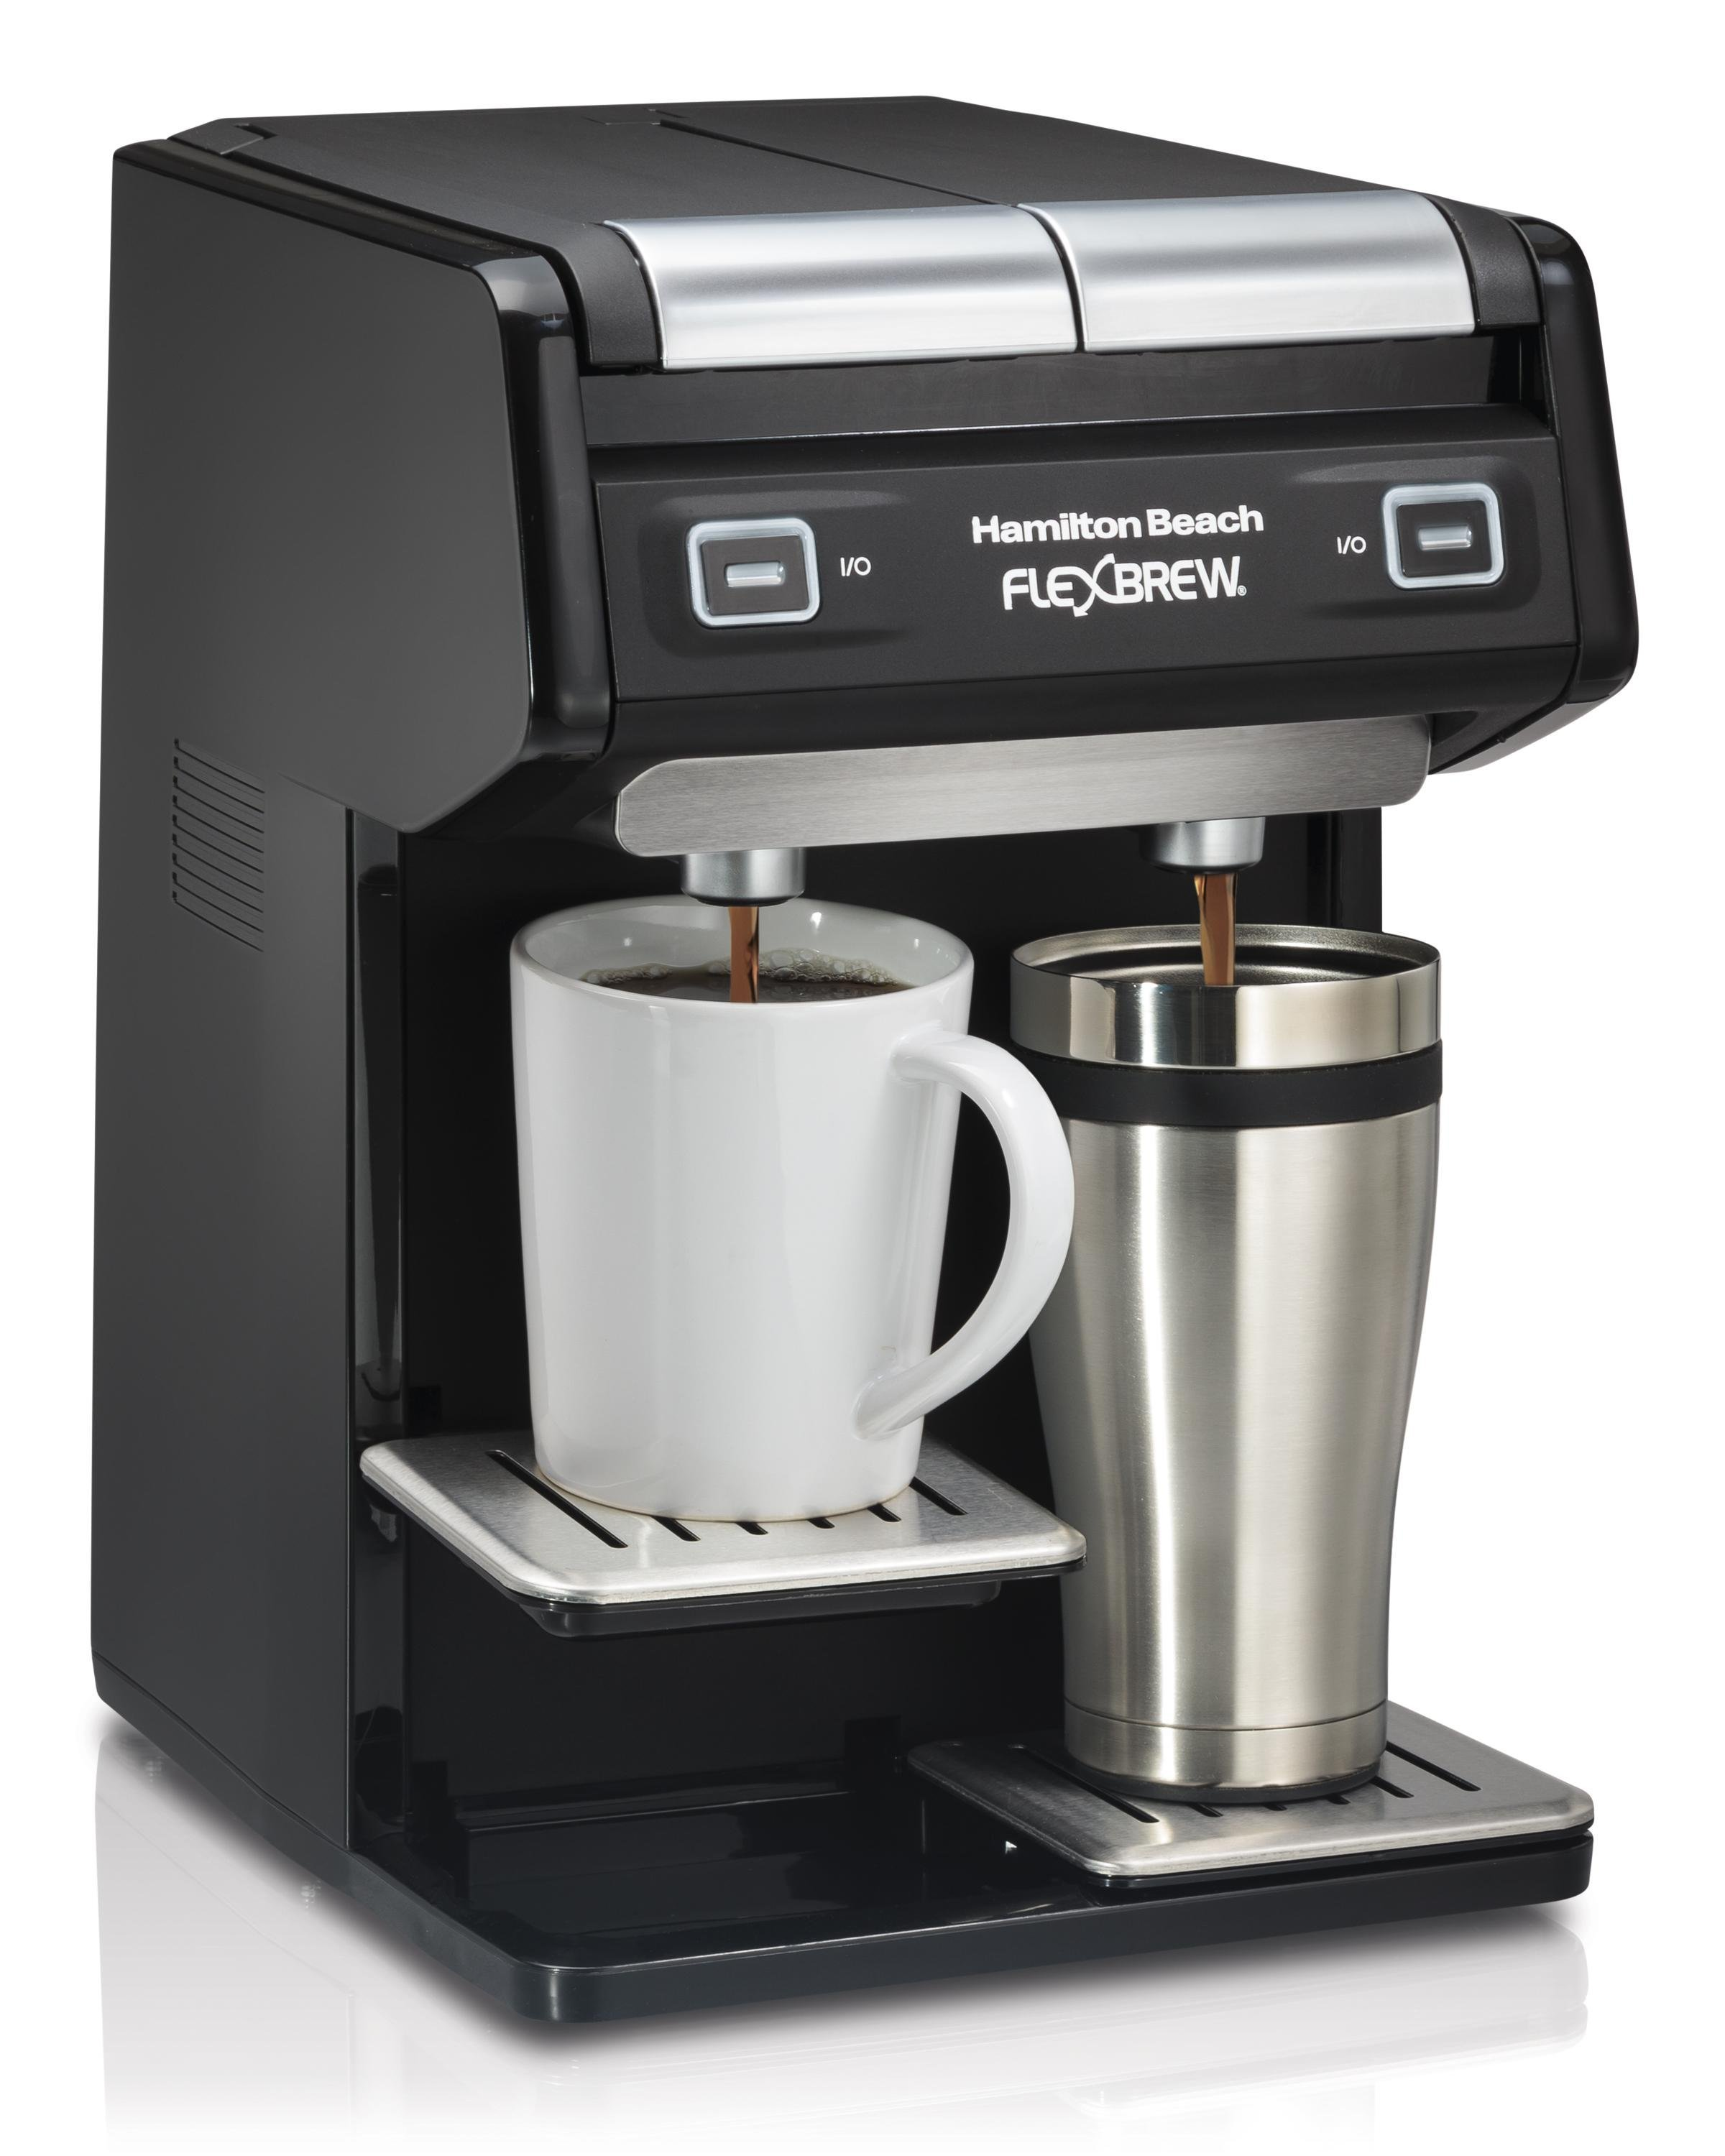 Single Serve Coffee Maker With Large Reservoir : Amazon.com: Hamilton Beach 49998 FlexBrew Dual Single Serve Coffee Maker, Black: Kitchen & Dining